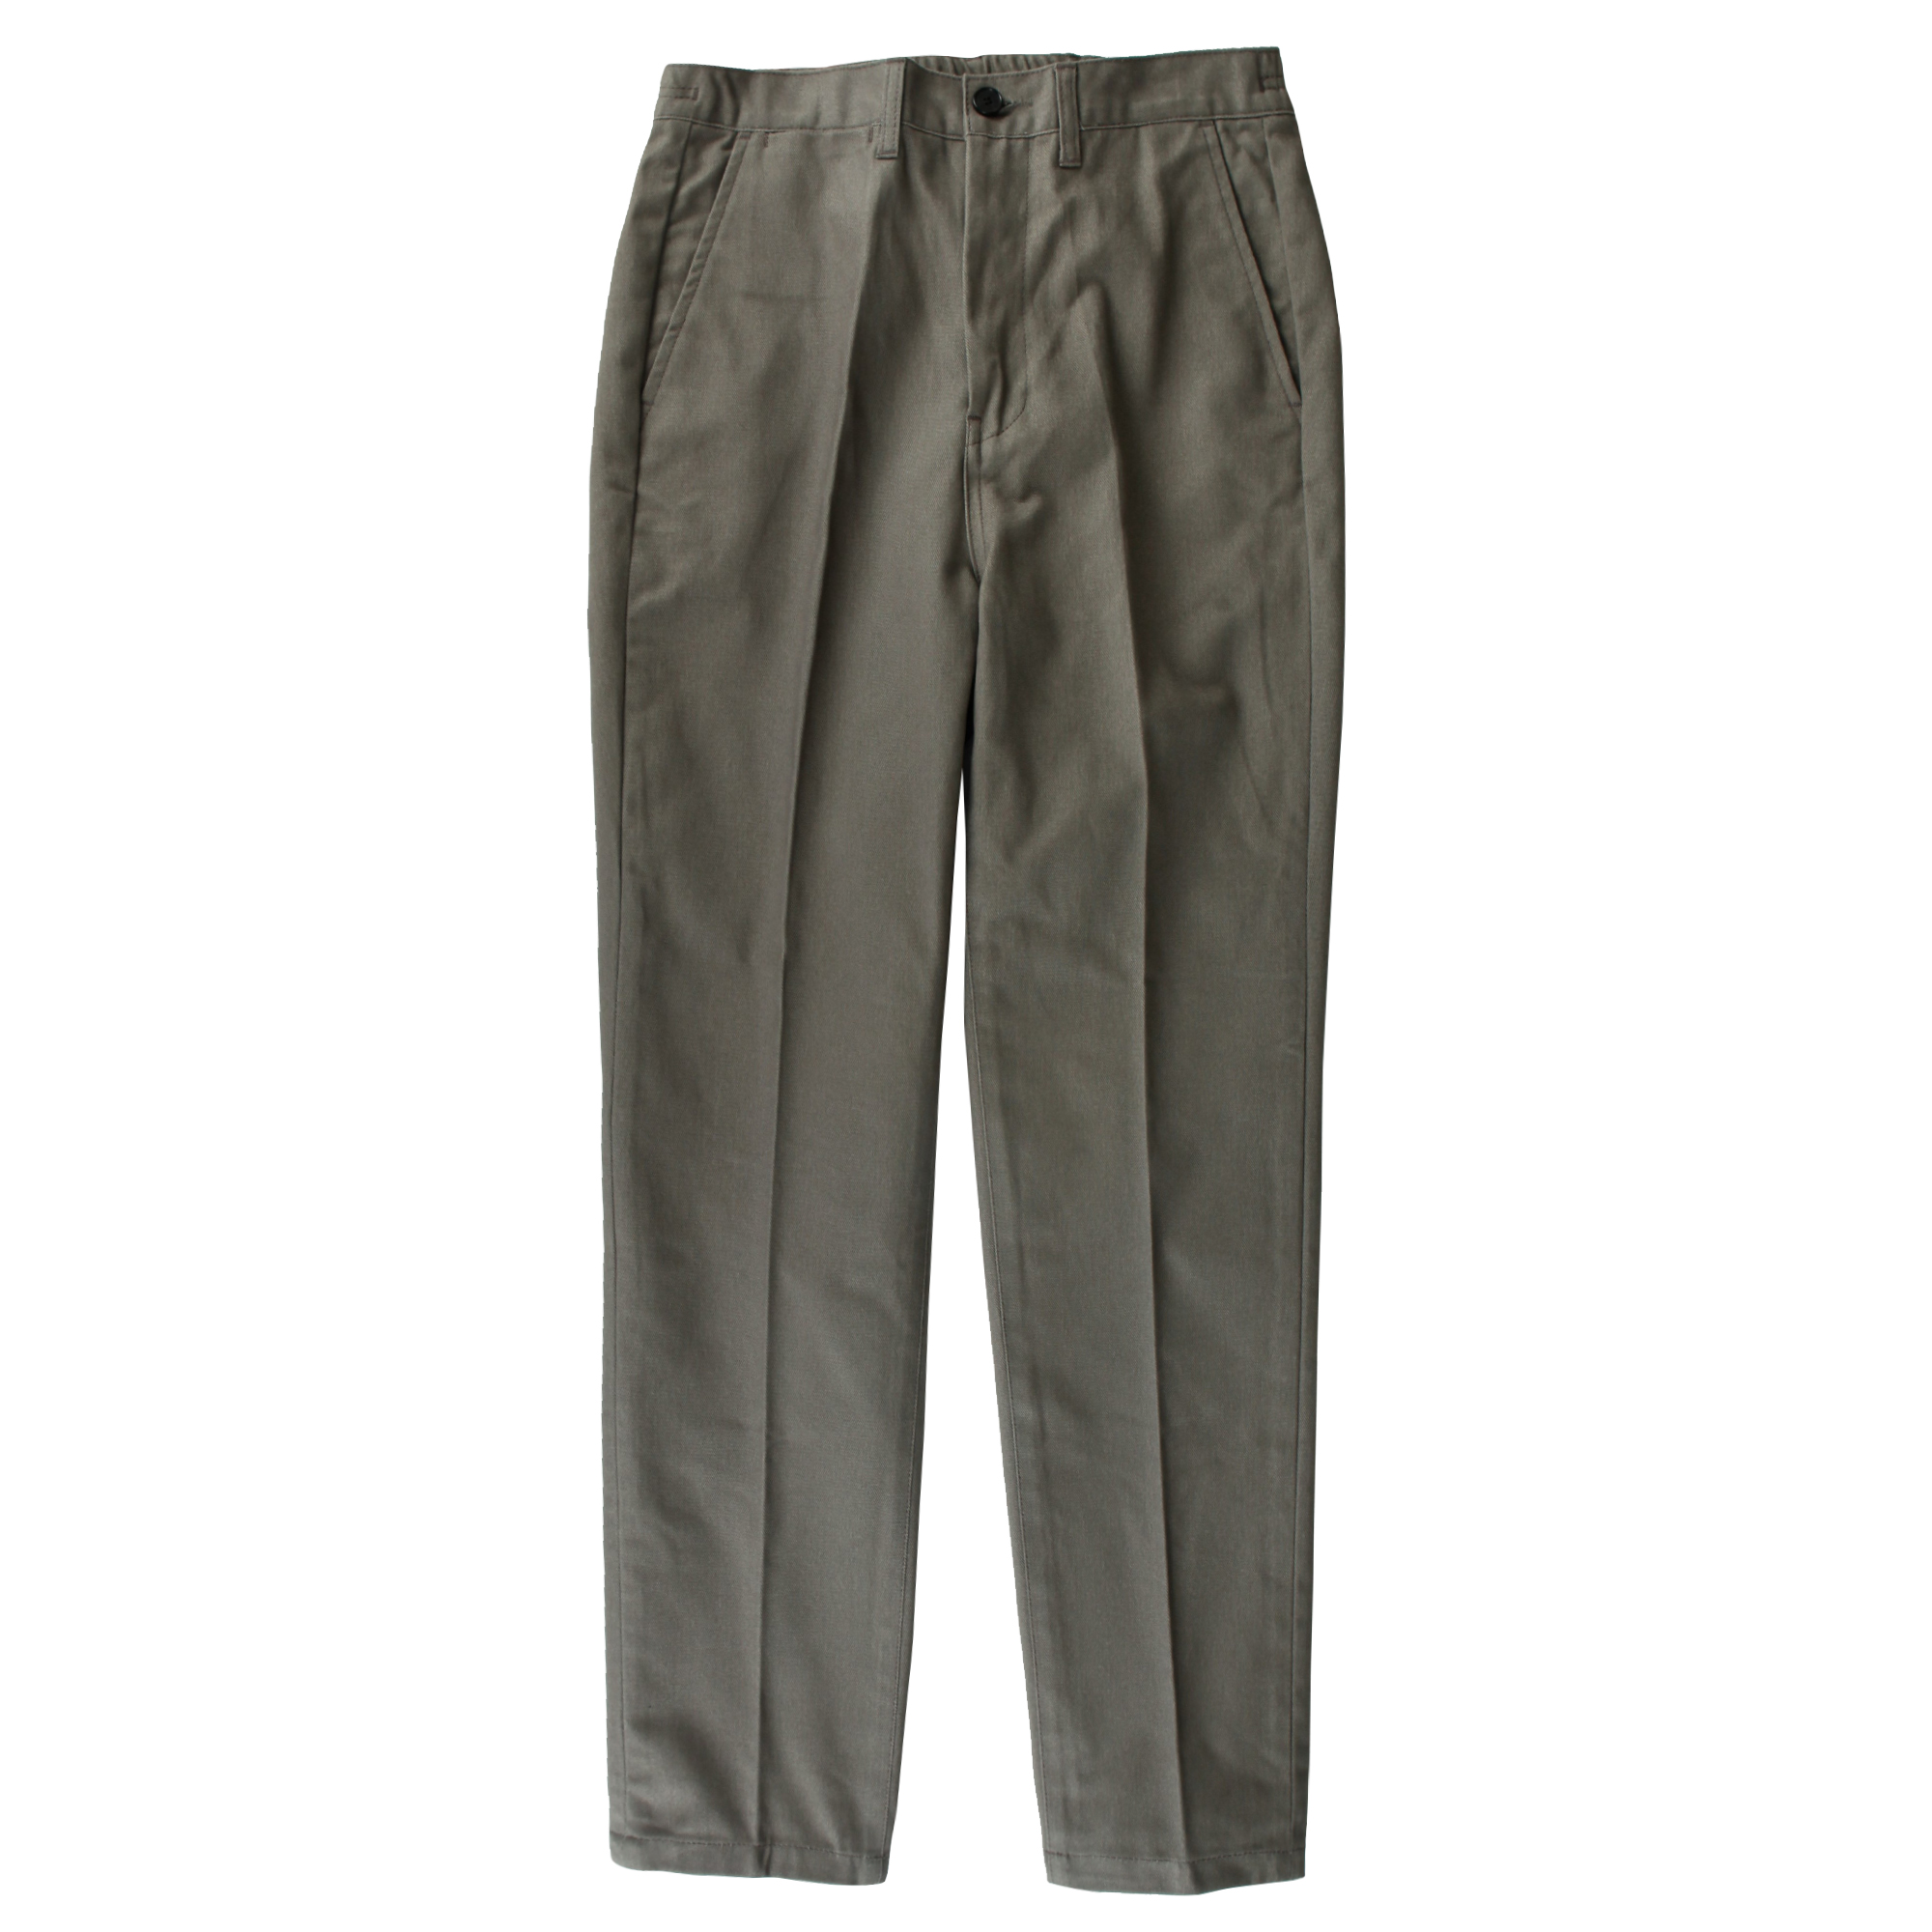 Fineday Clothing Half band trouser_Khaki